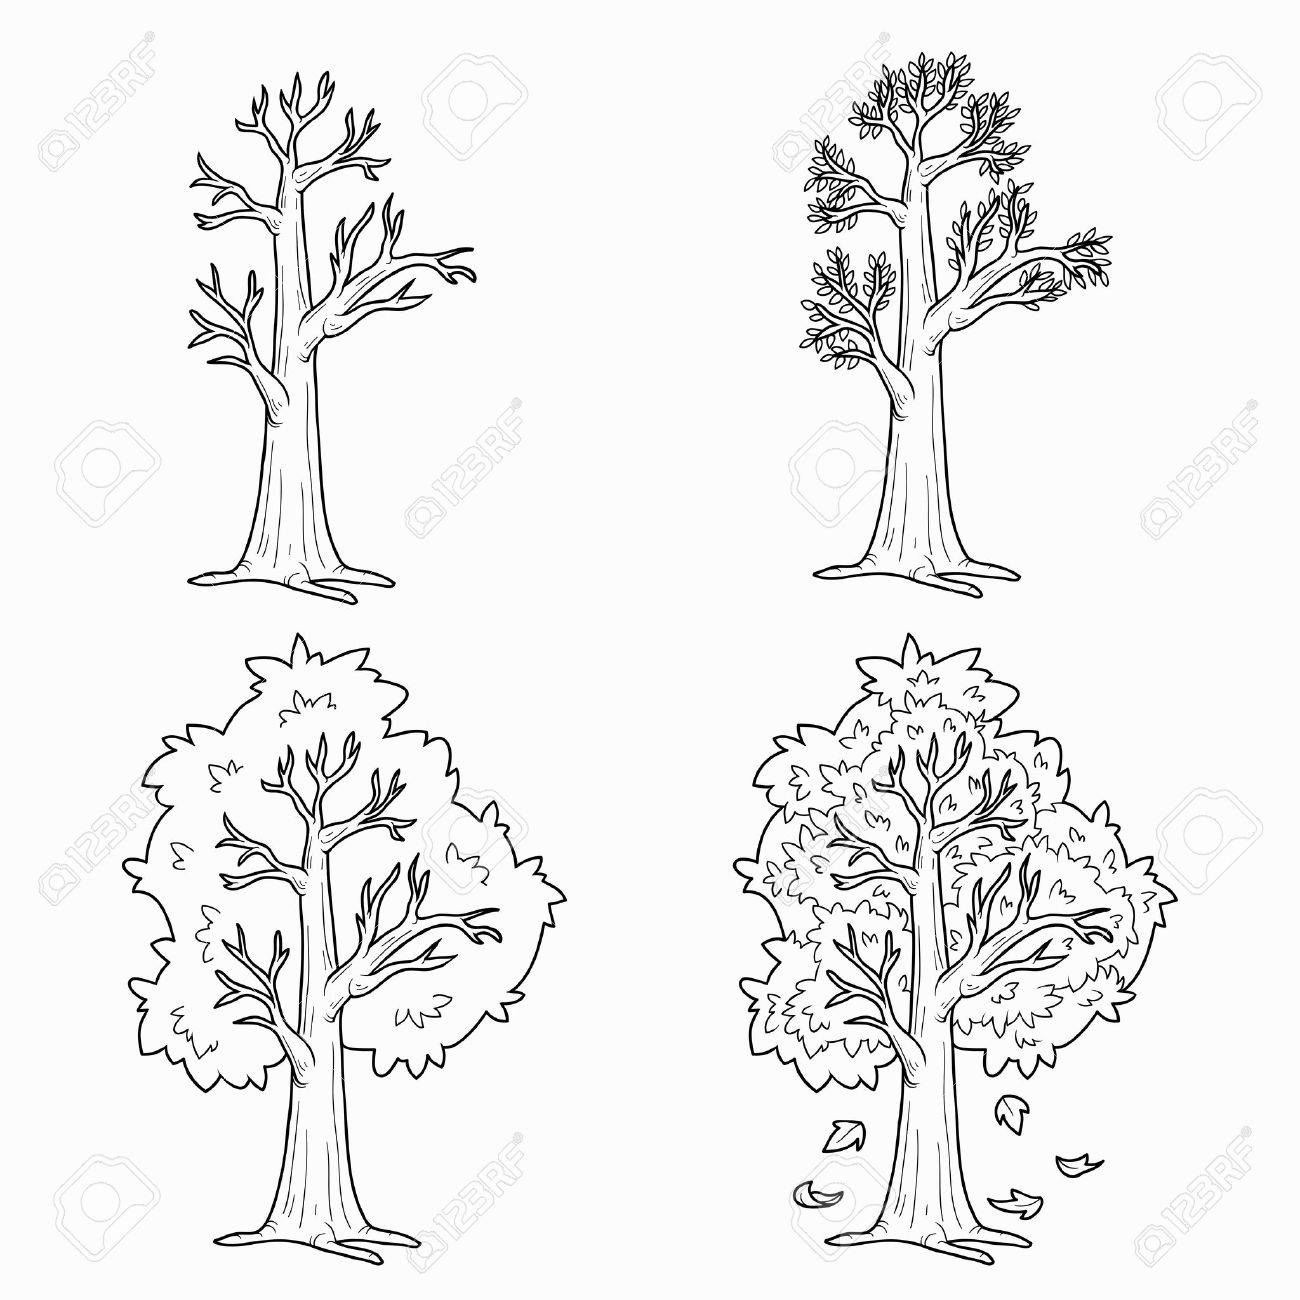 coloring book four seasons vector set of trees stock vector 34872560 - Coloring Book Trees